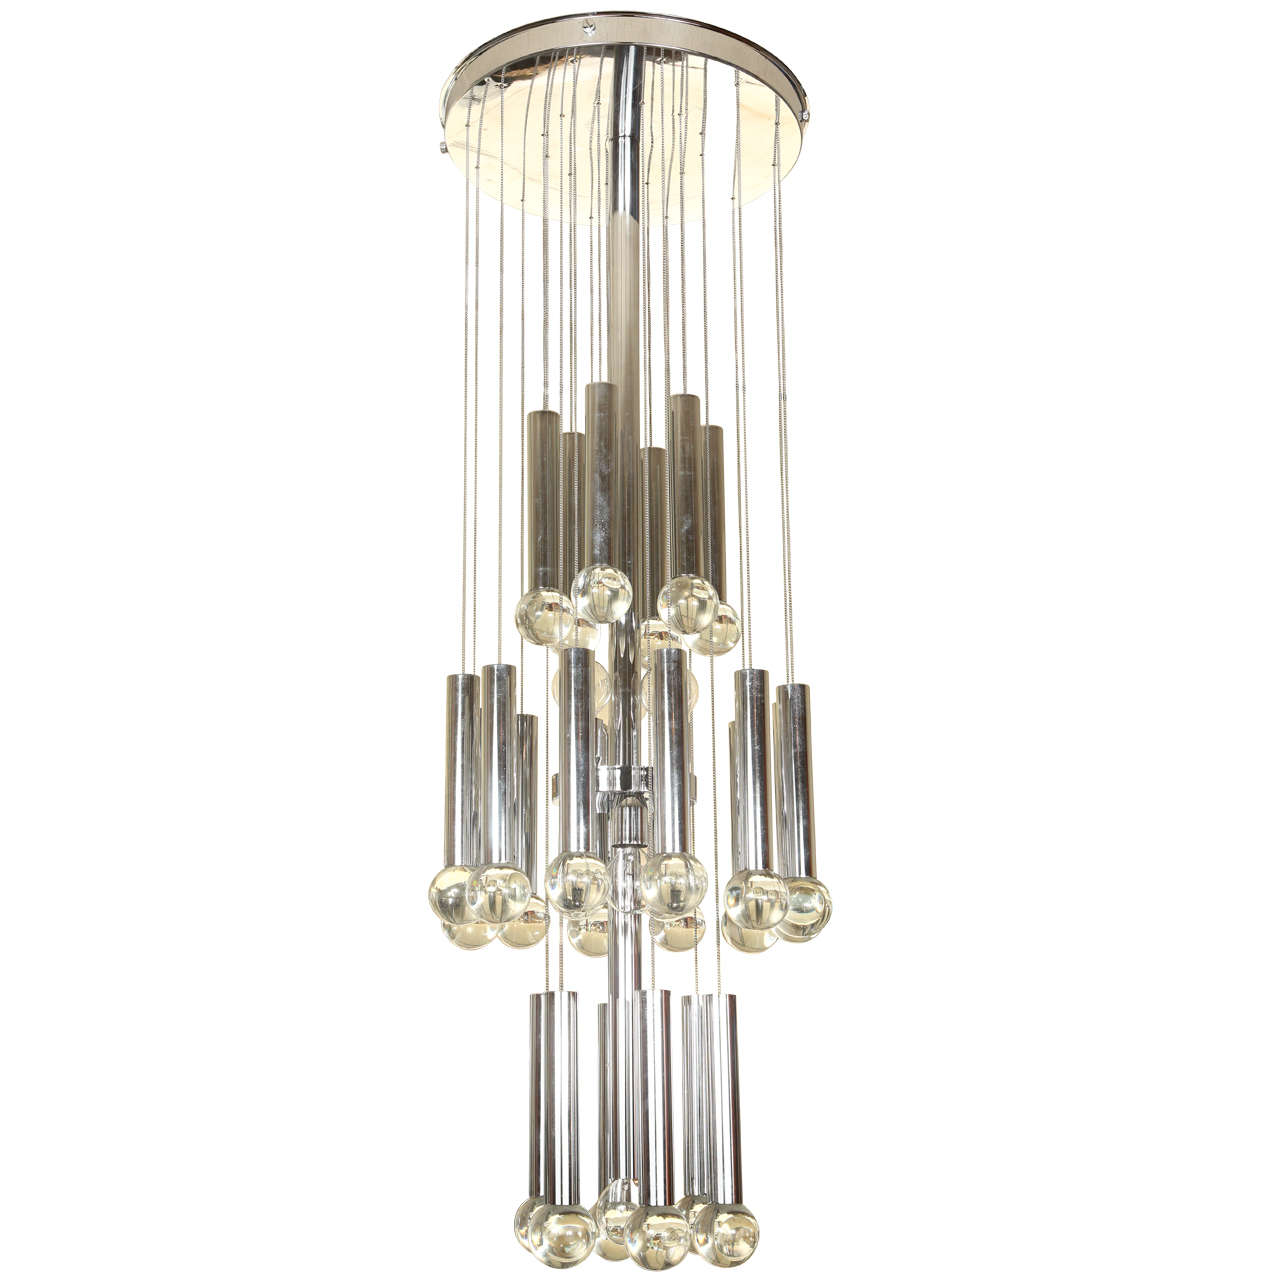 Italian Chrome And Glass Chandelier At 1stdibs